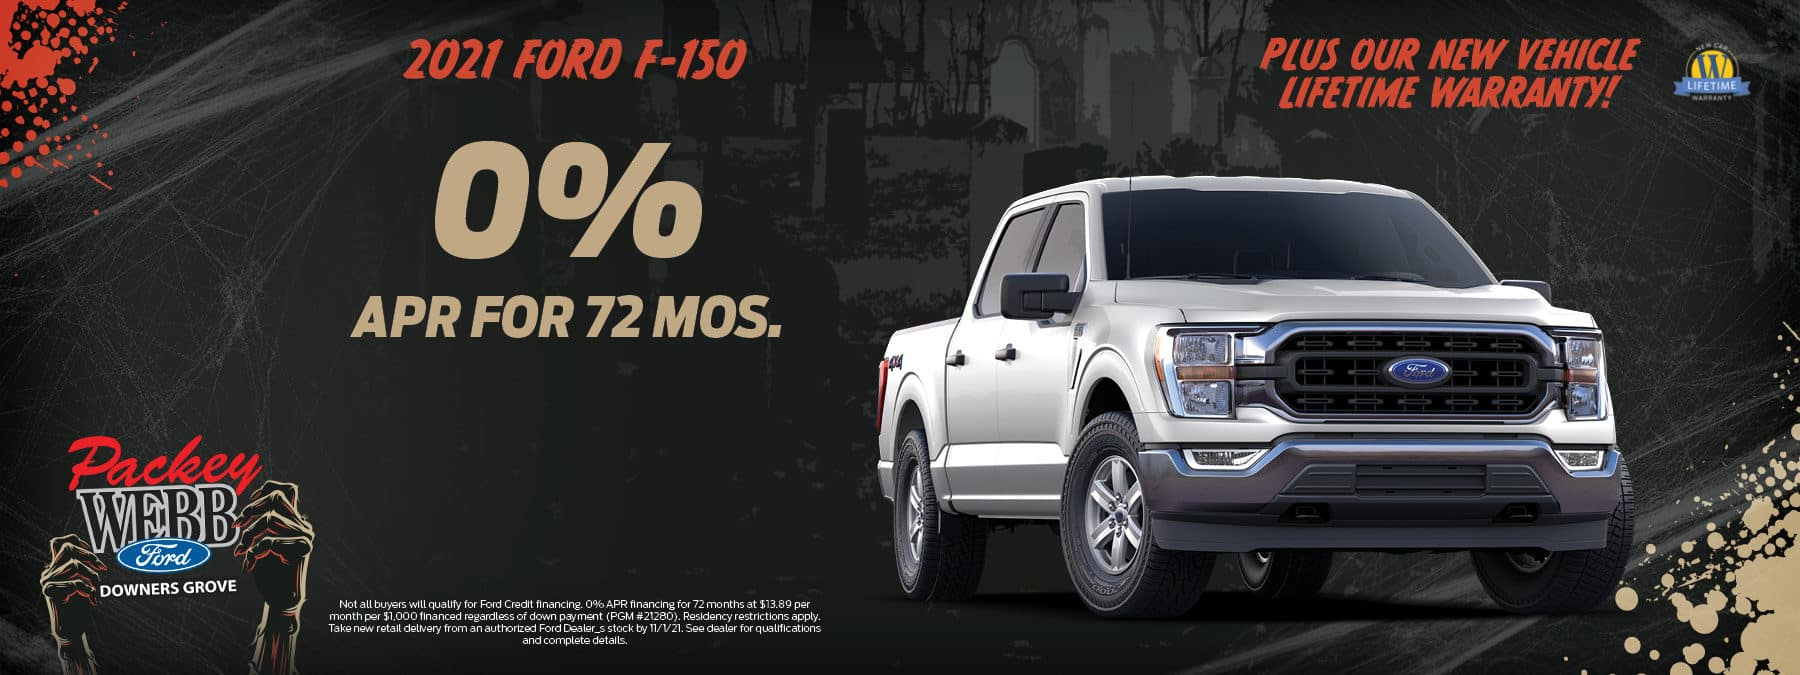 2021 Ford F-150 APR offer   Packey Webb Ford   Downers Grove, IL